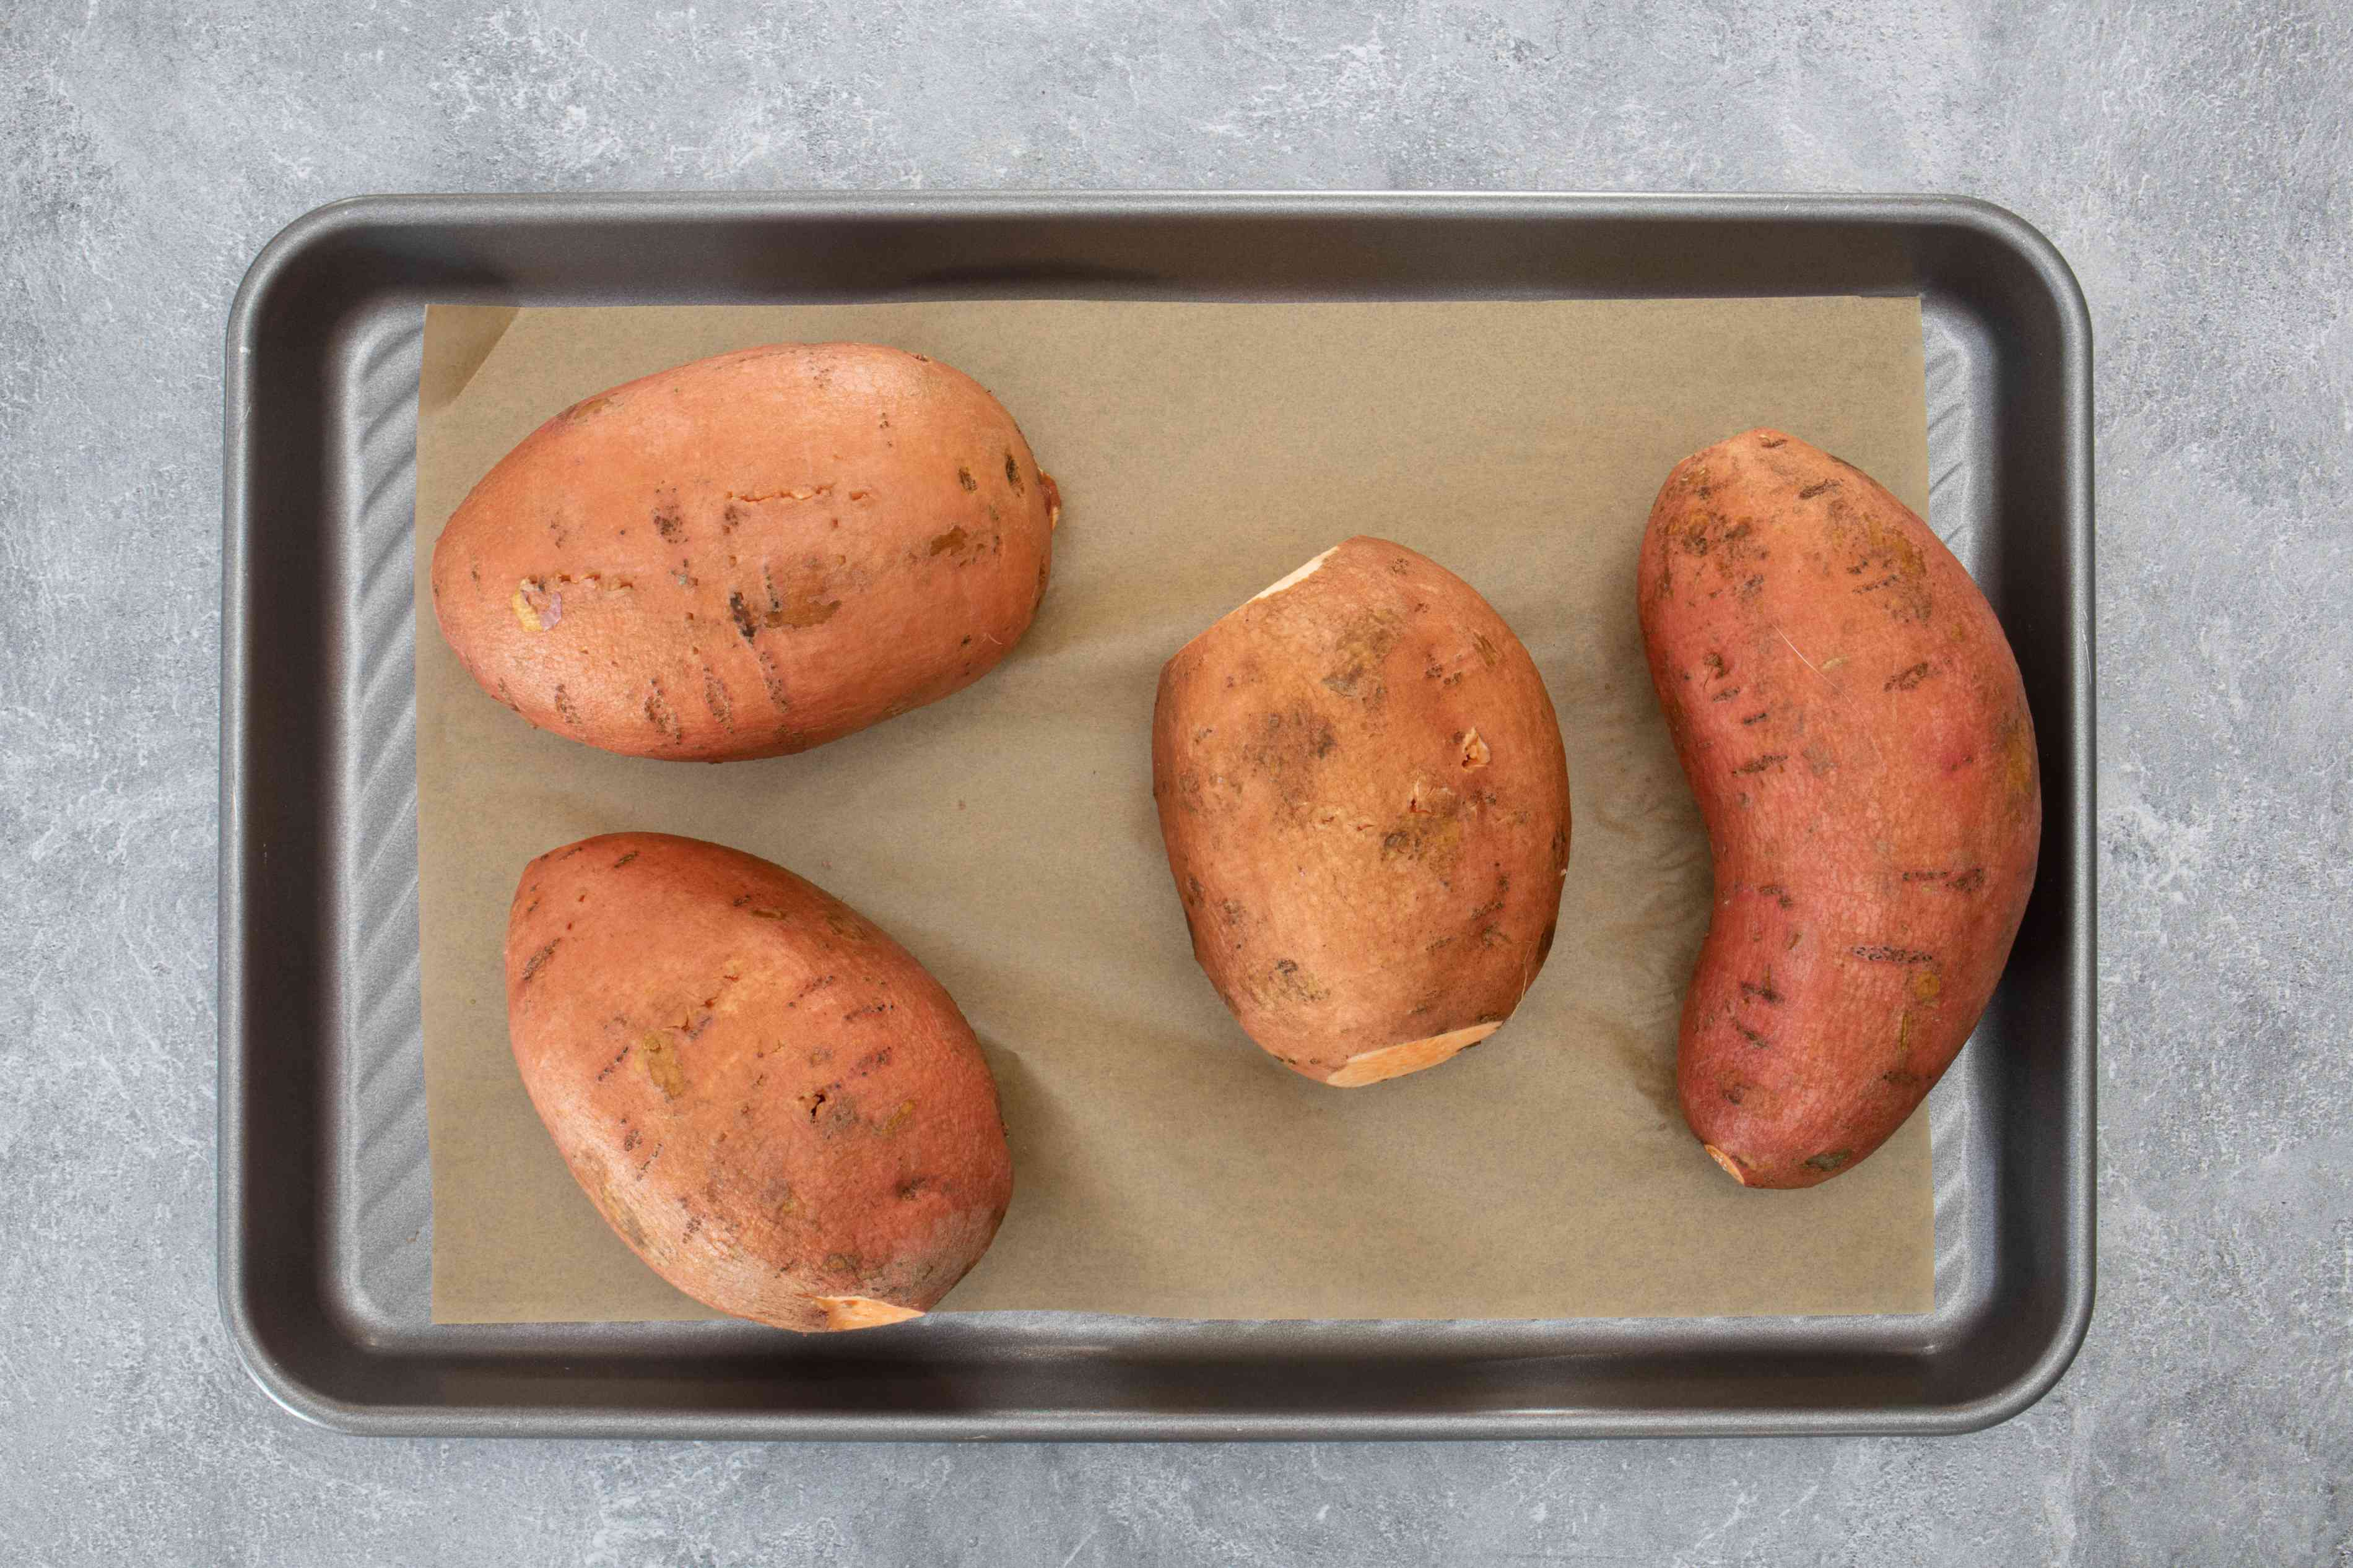 Scrubbed sweet potatoes on a lined rimmed baking sheet